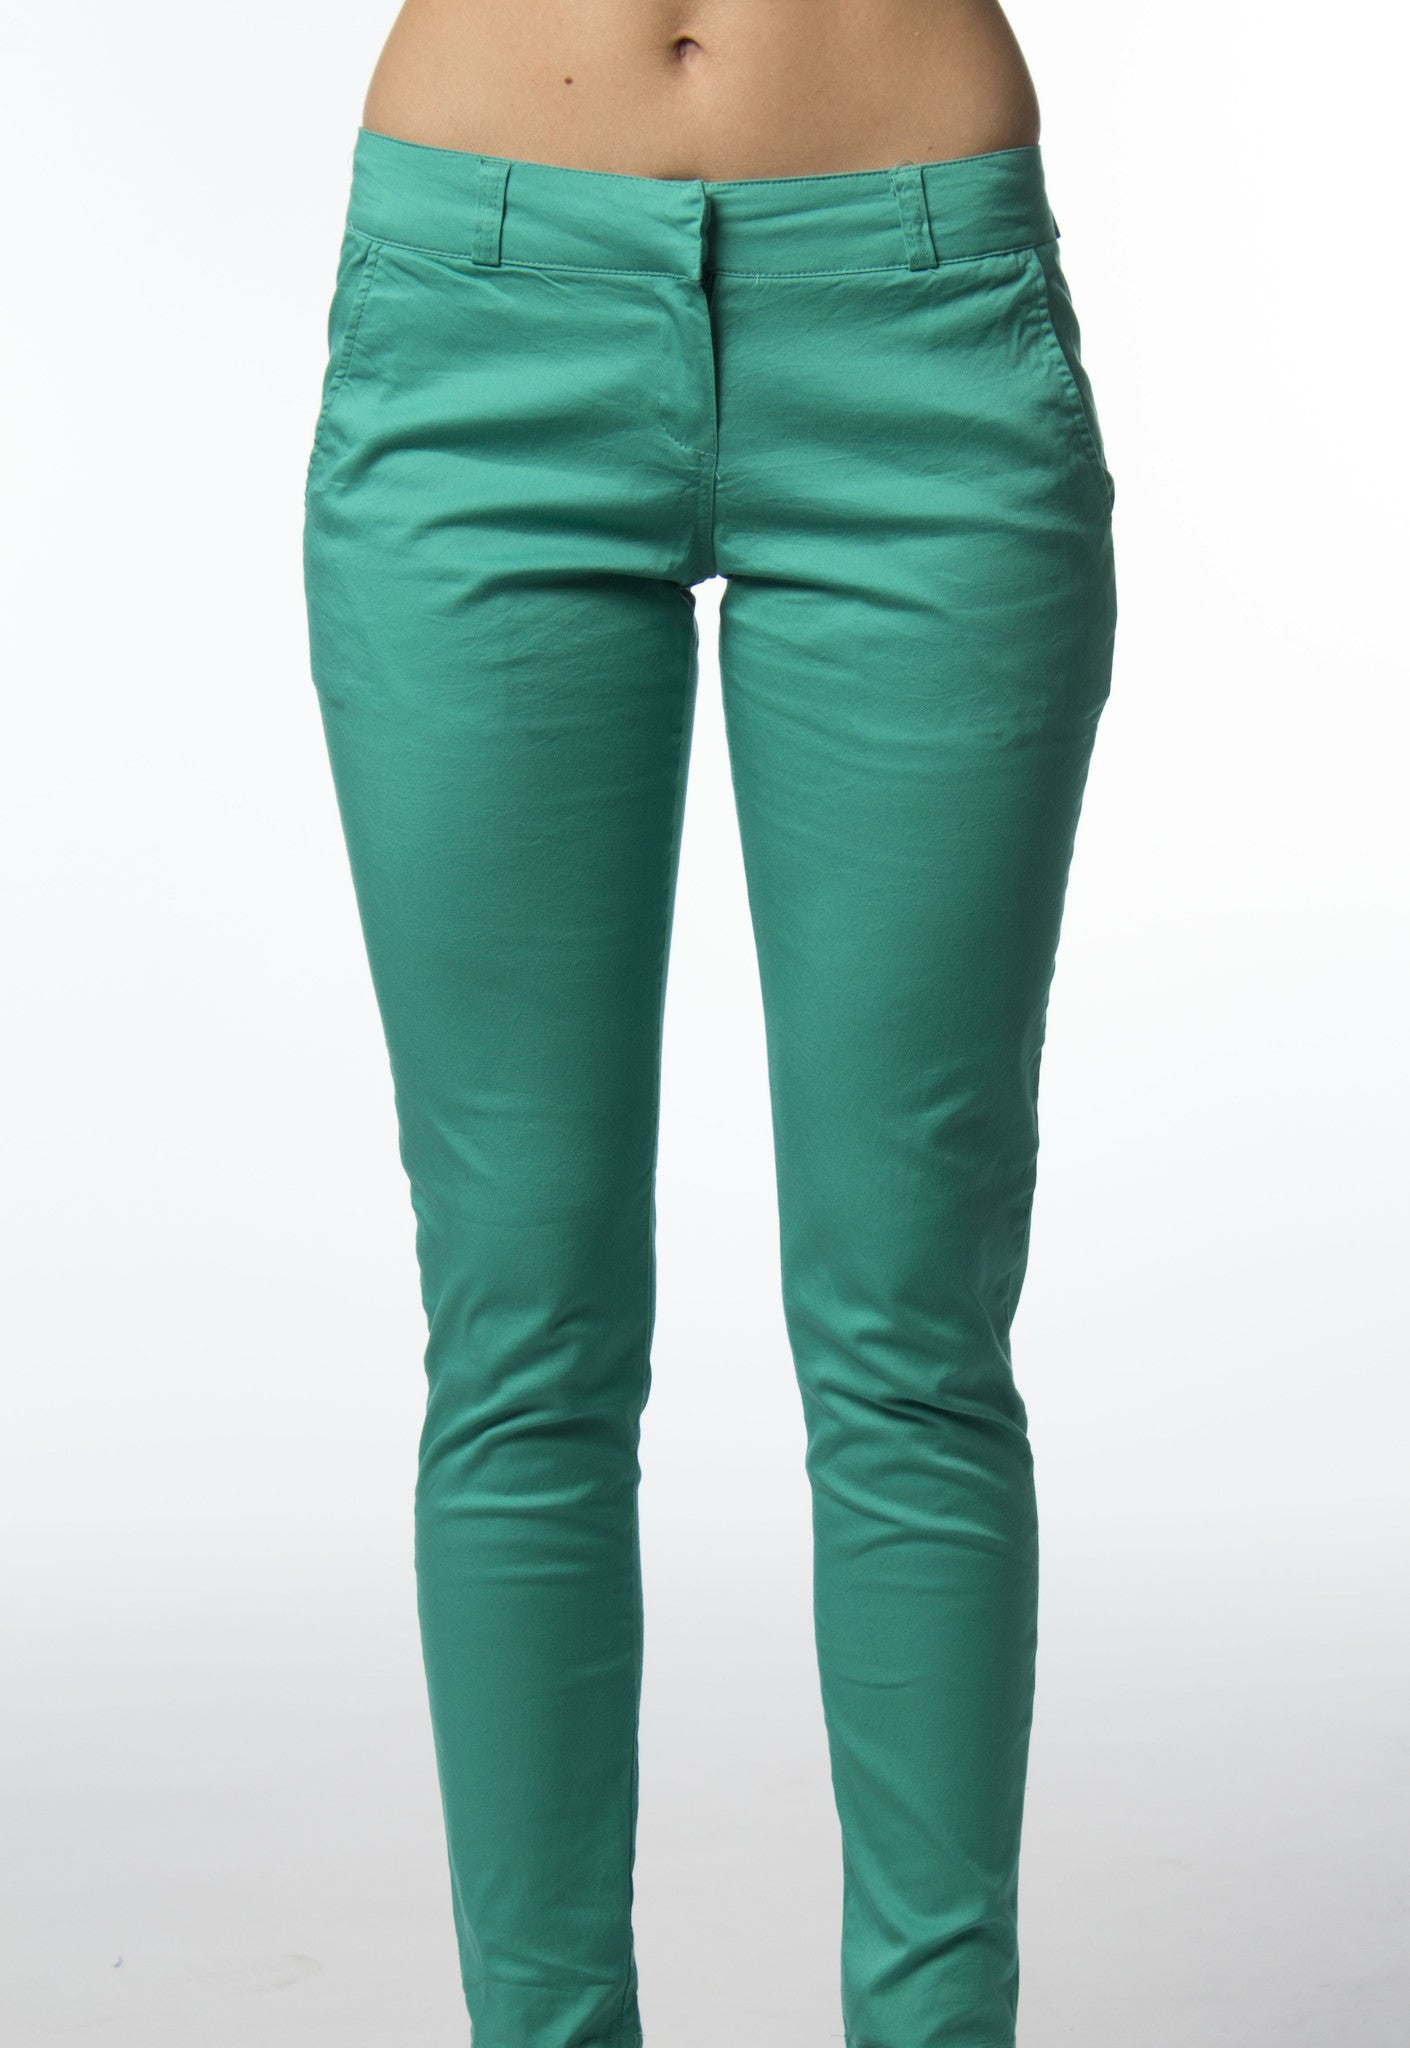 Cotton skinny pant in cool green color